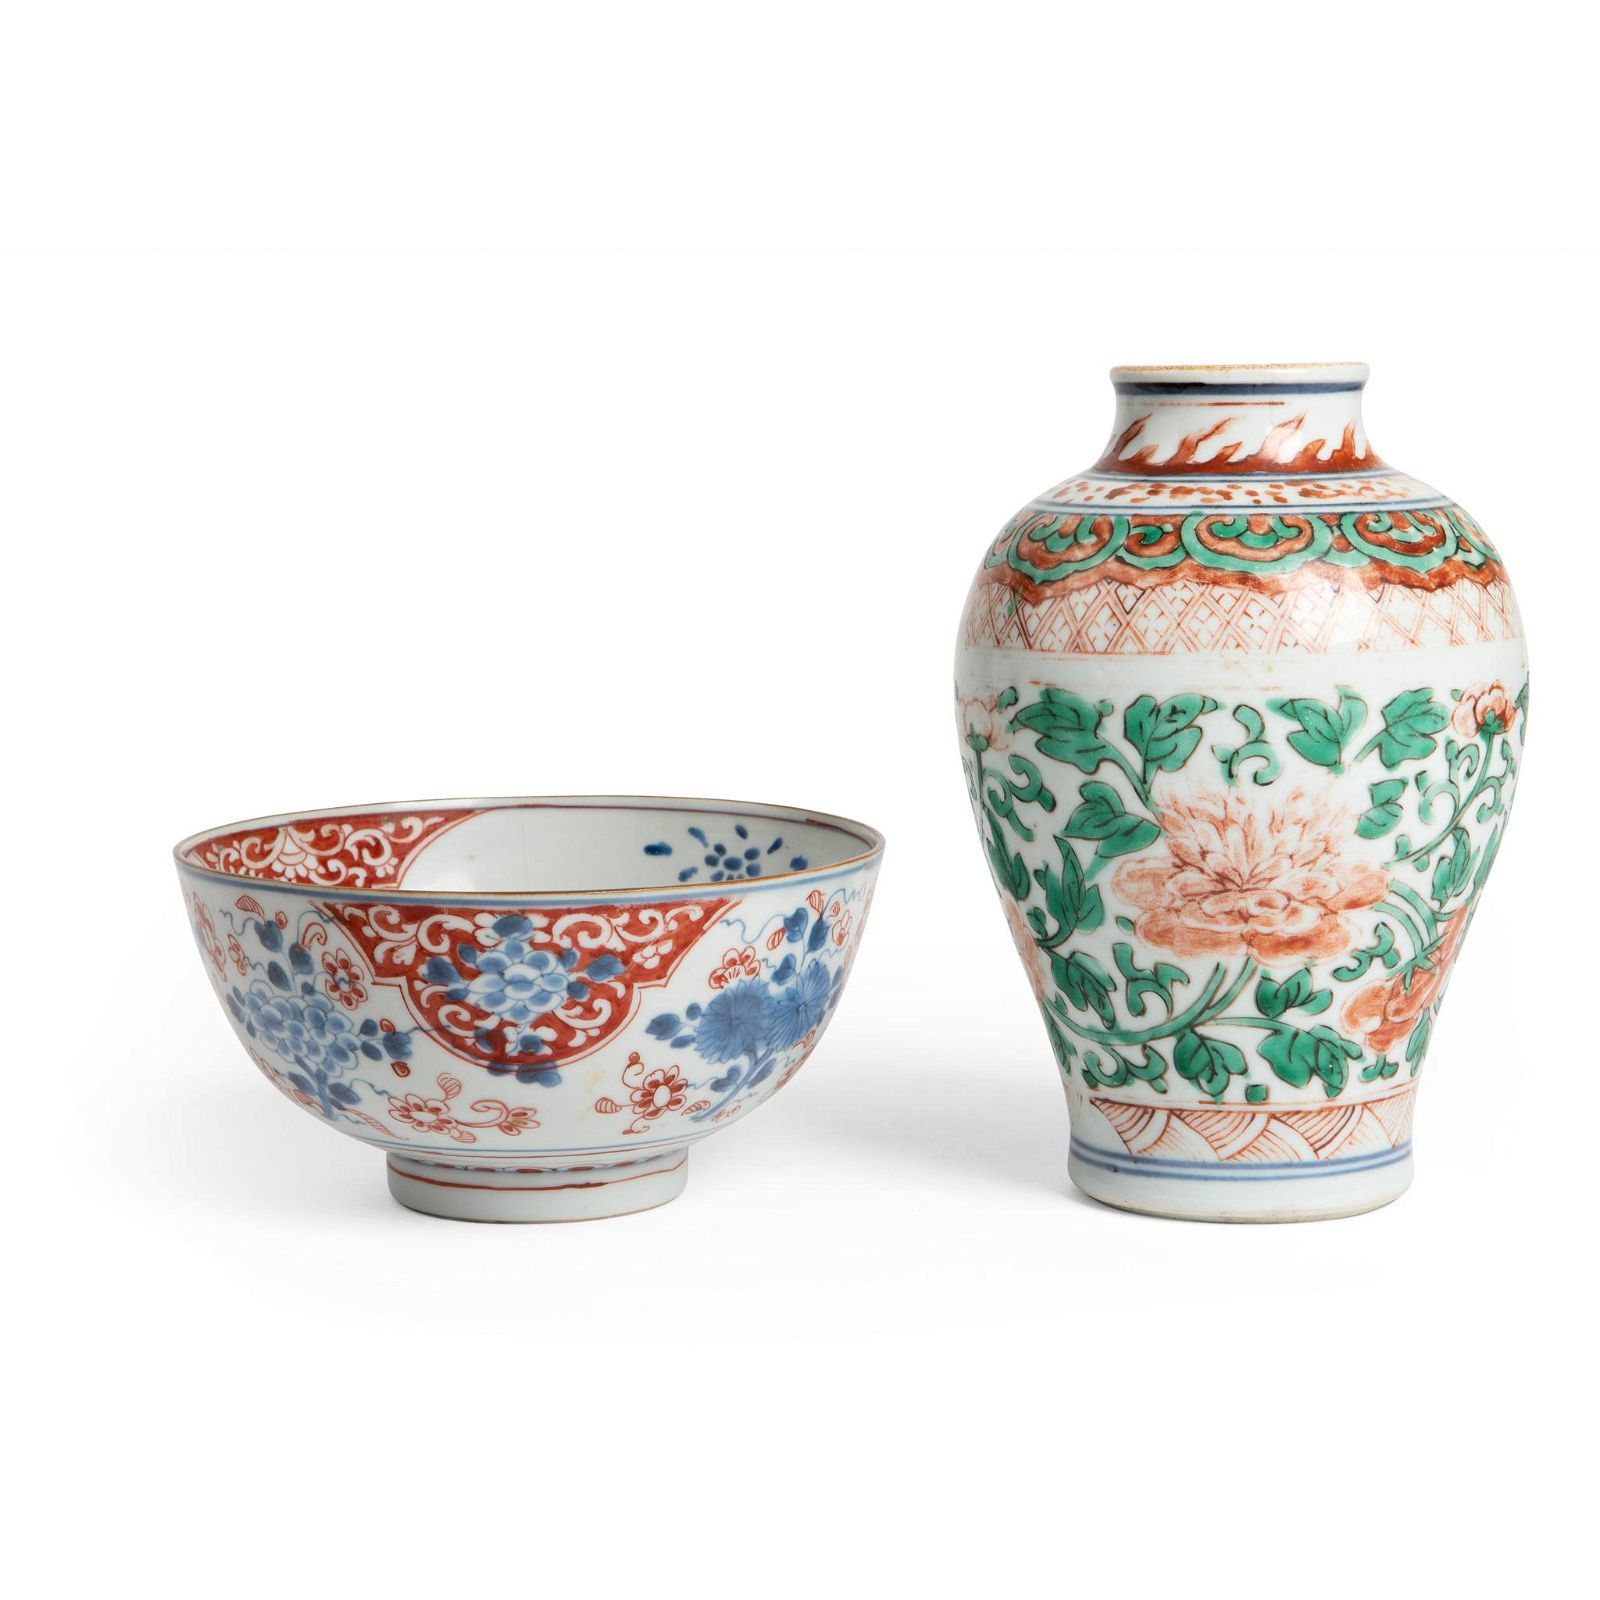 TWO POLYCHROME PORCELAIN WARES QING DYNASTY, 17TH-18TH